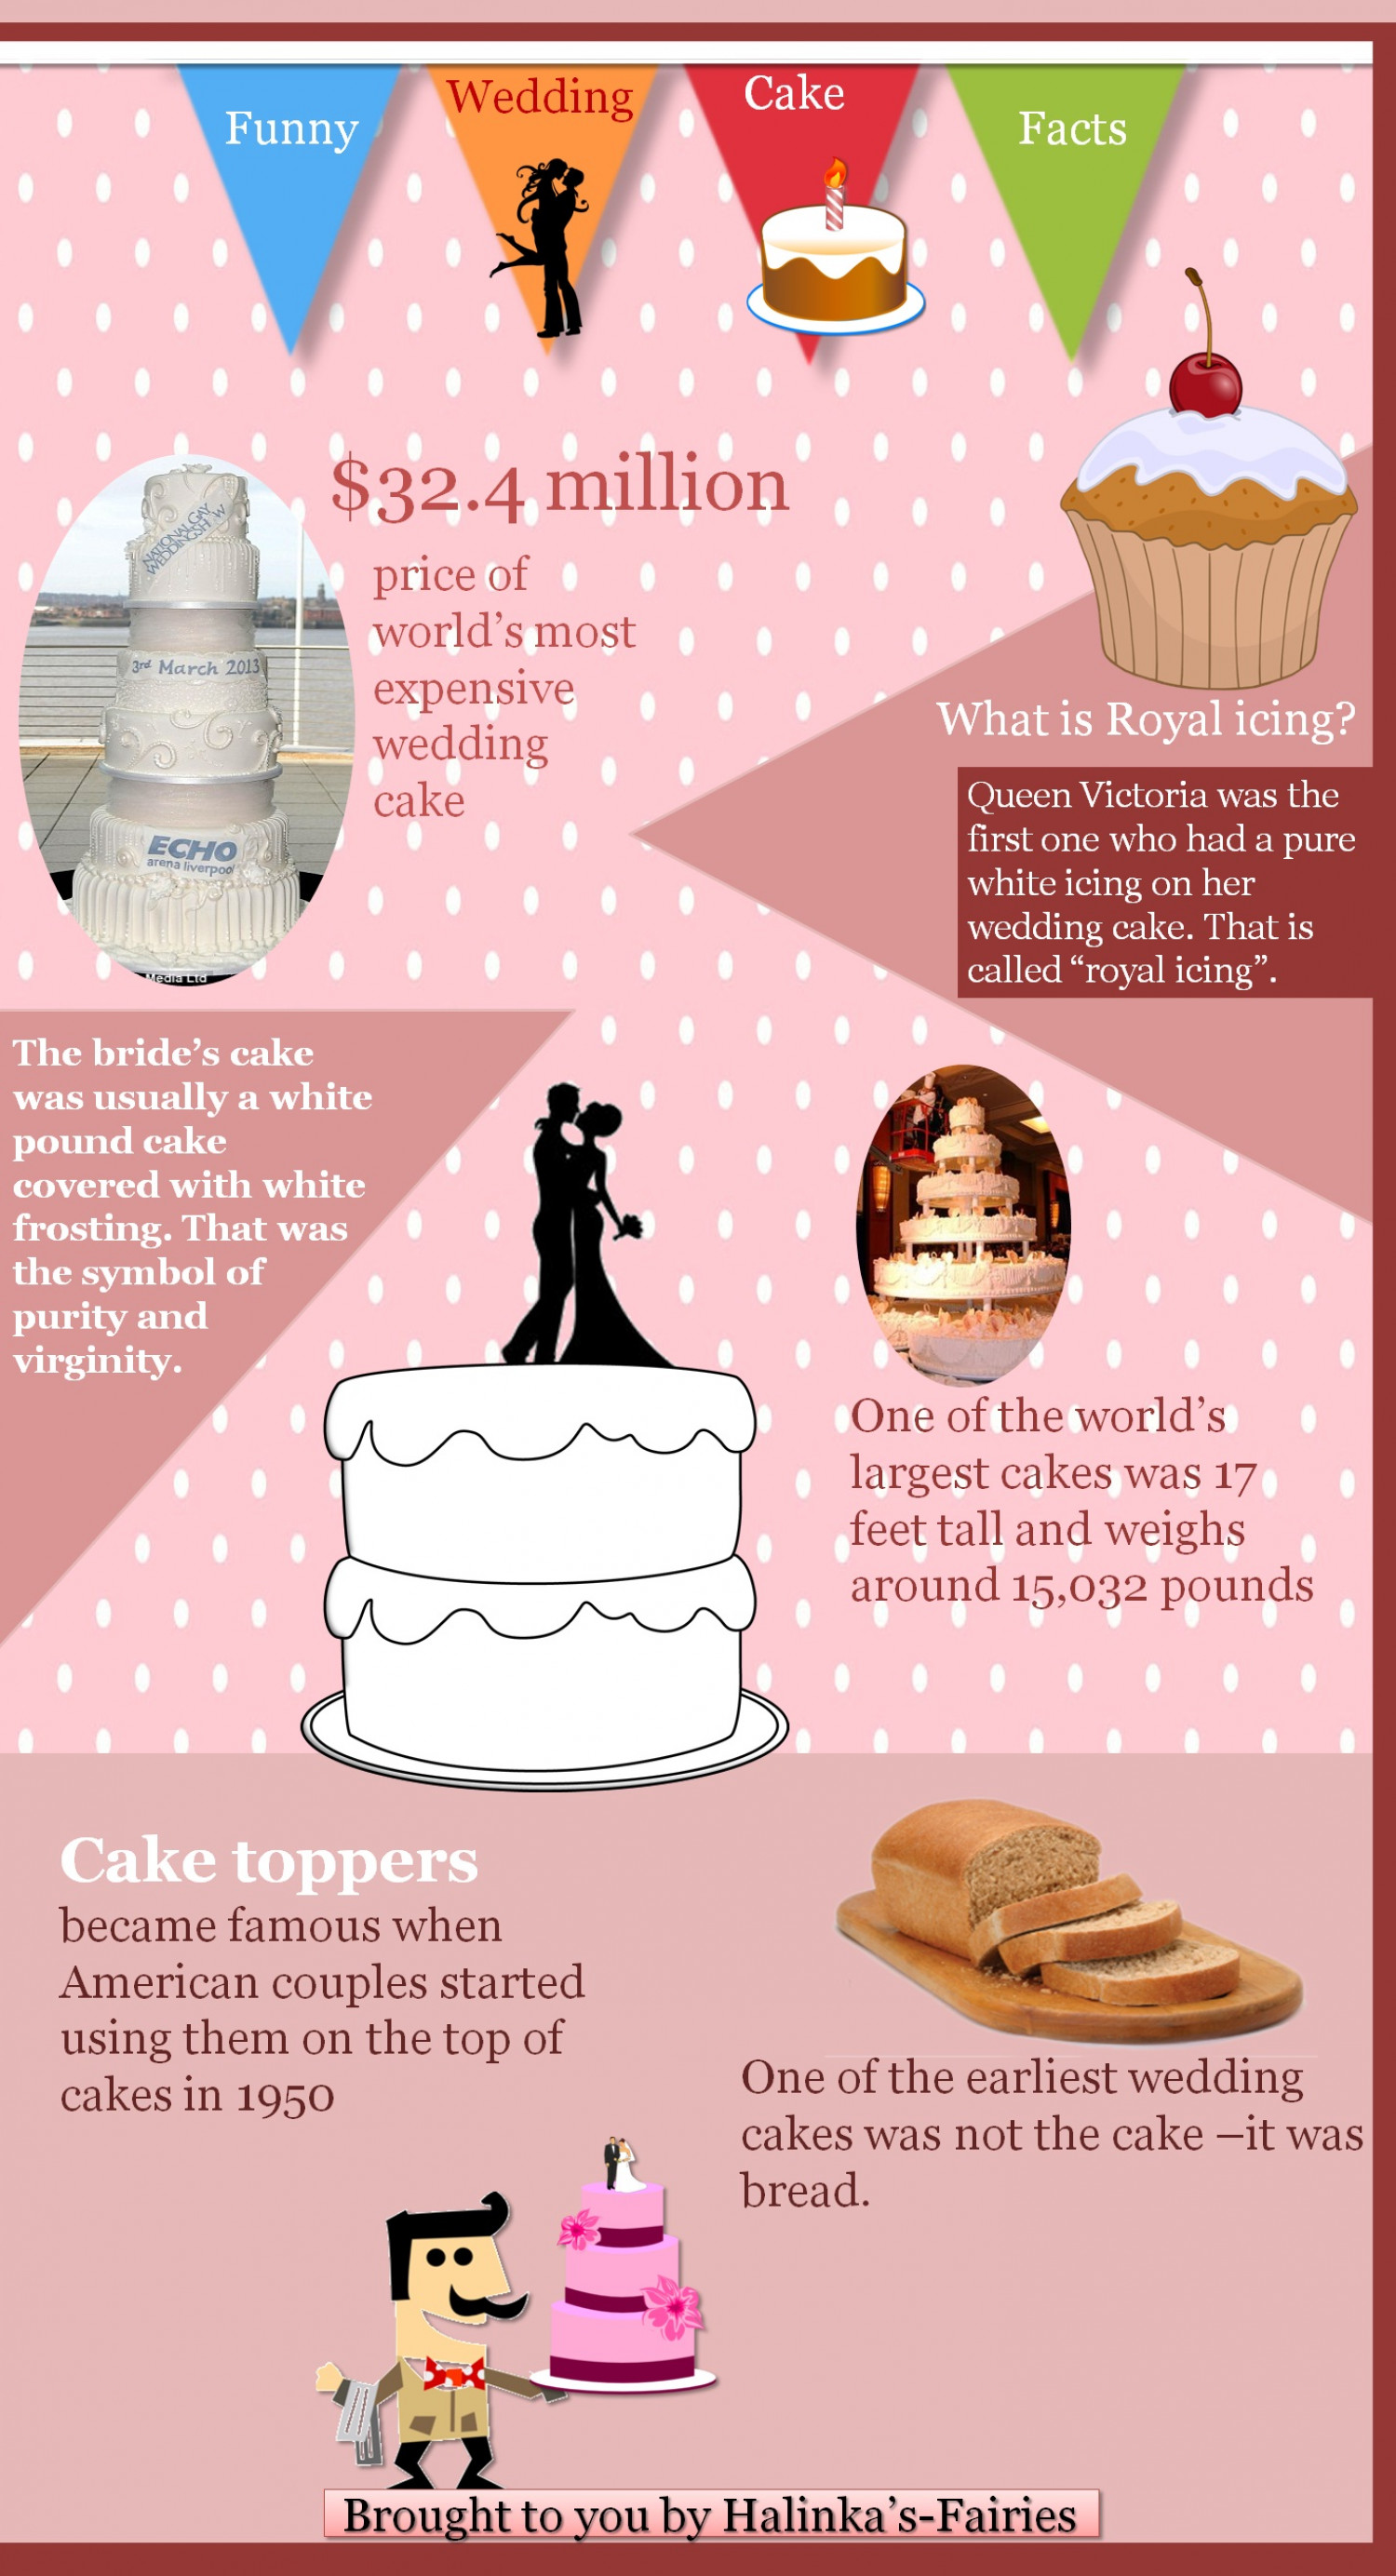 facts about wedding